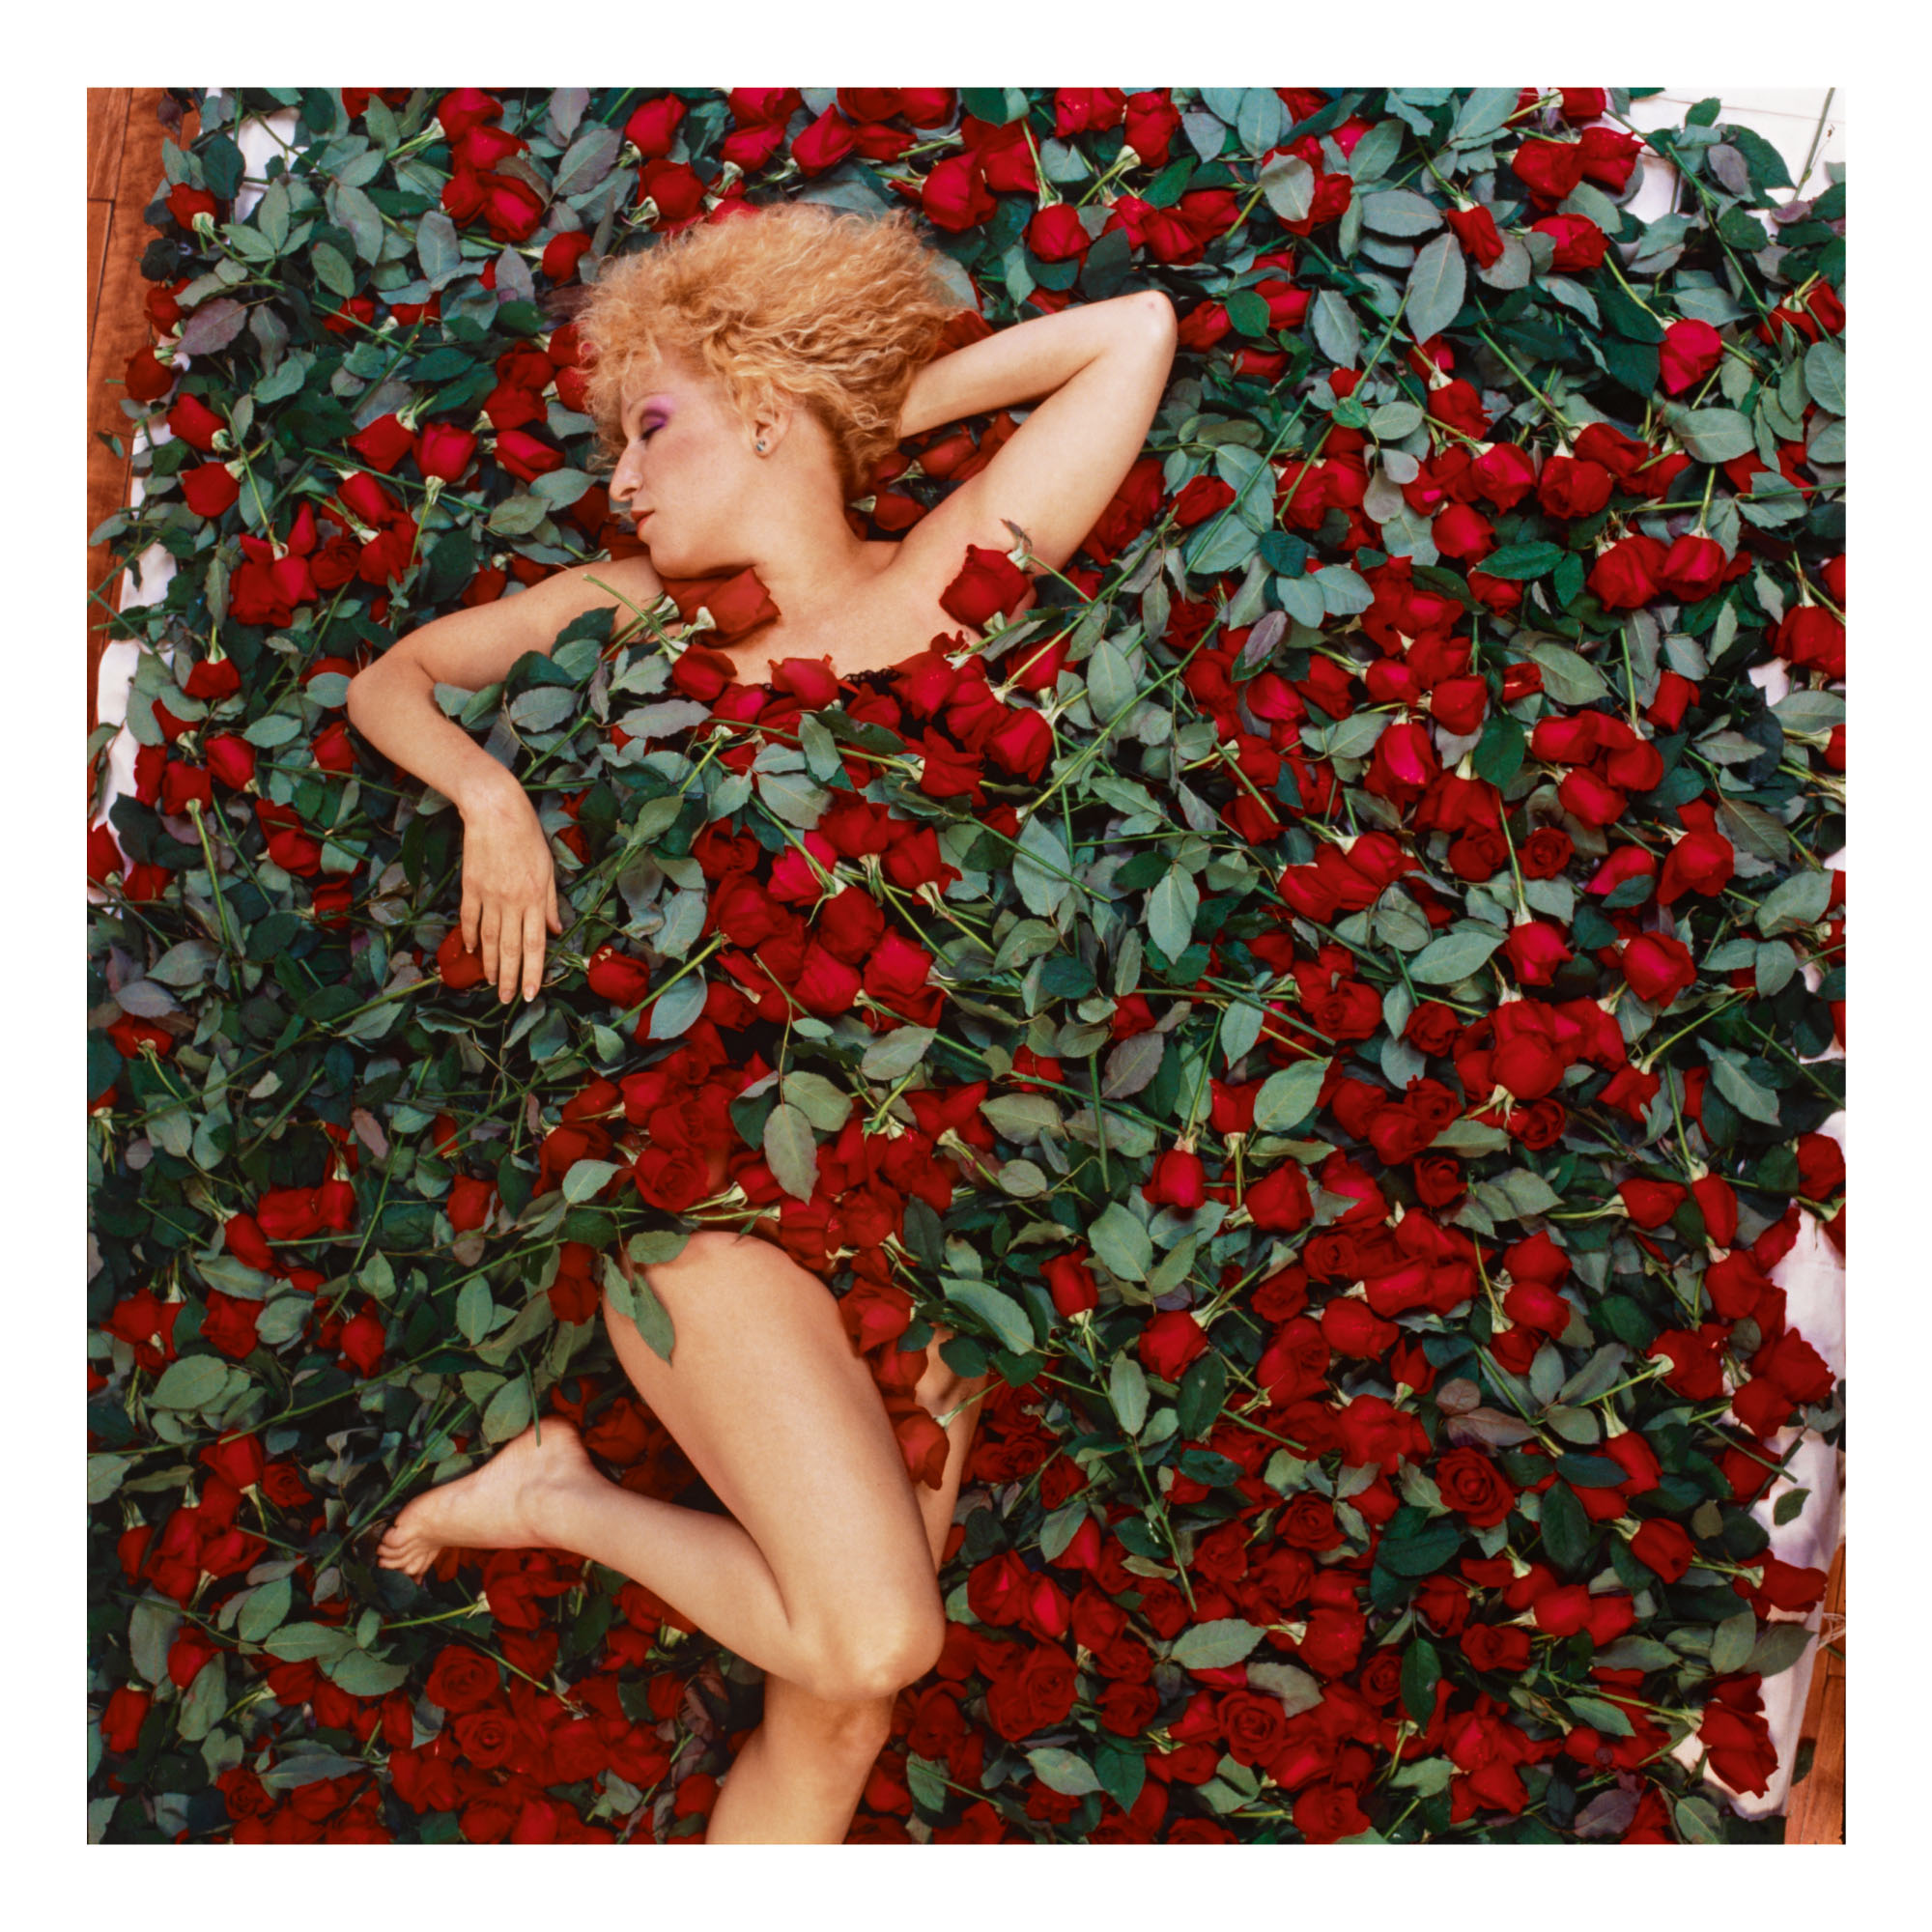 ANNIE LEIBOVITZ | BETTE MIDLER, NEW YORK CITY